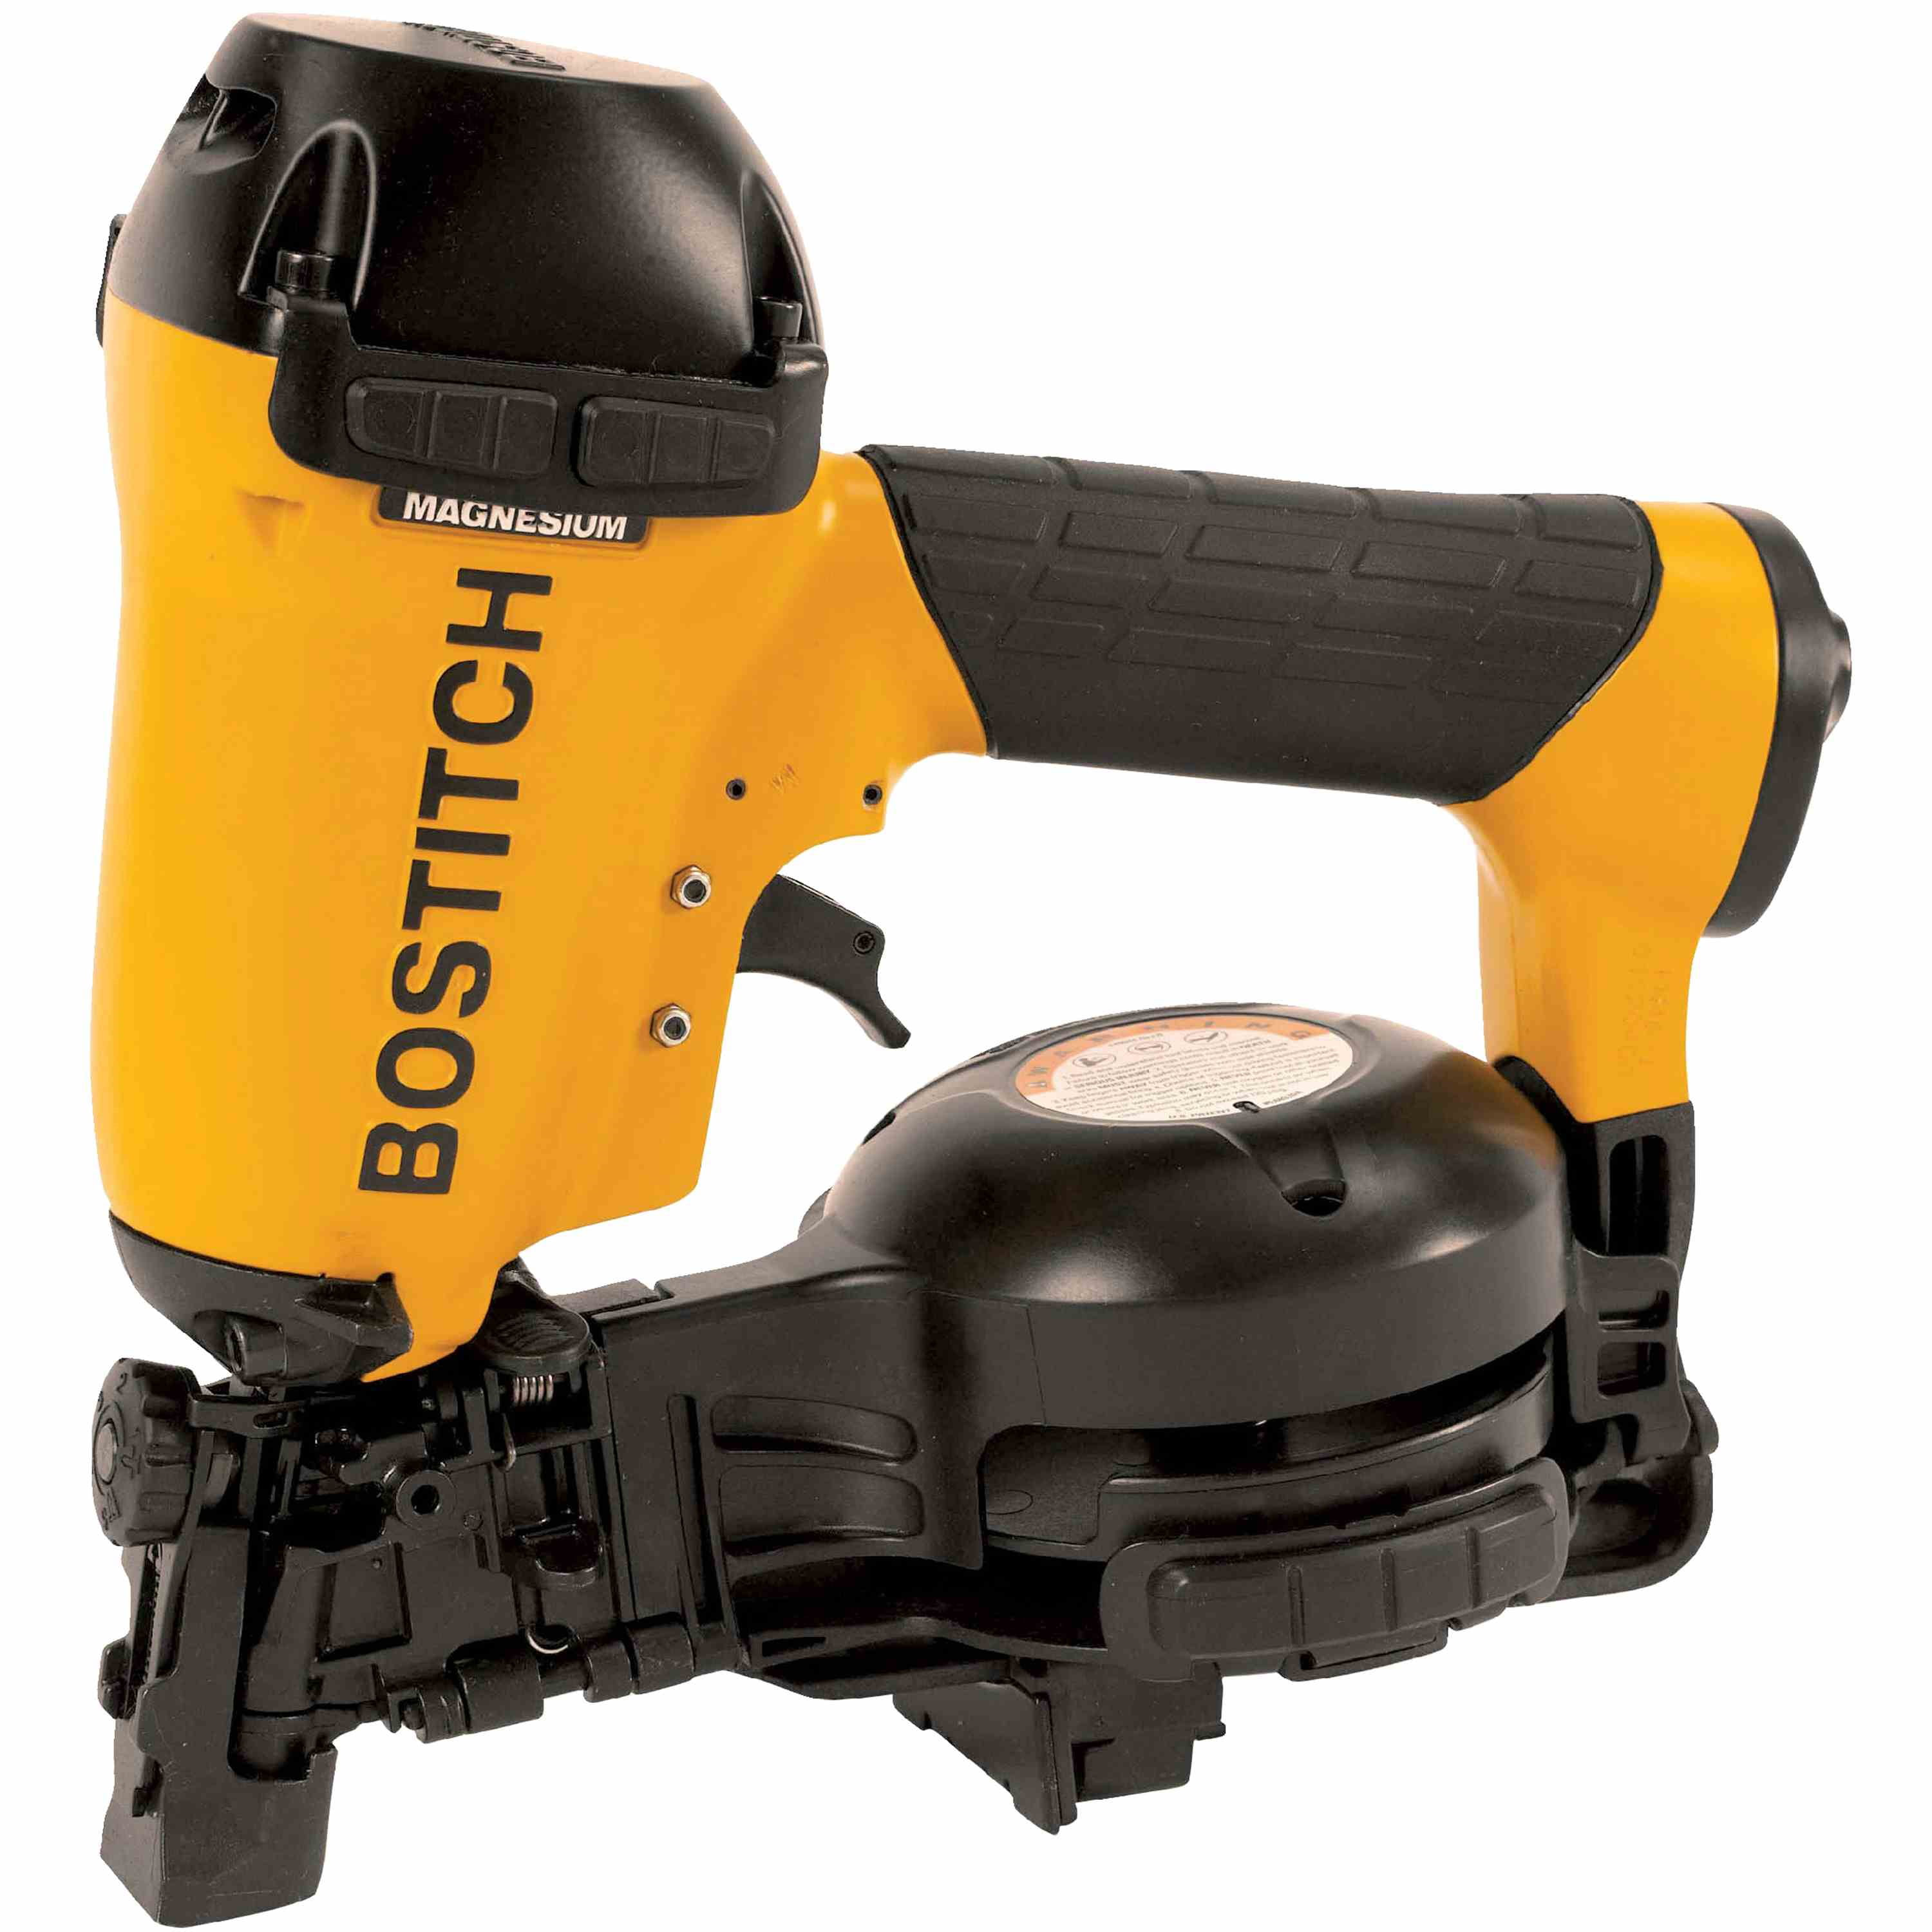 BOSTITCH RN46-1 3 4-Inch to 1-3 4-Inch Coil Roofing Nailer by STANLEY BOSTITCH